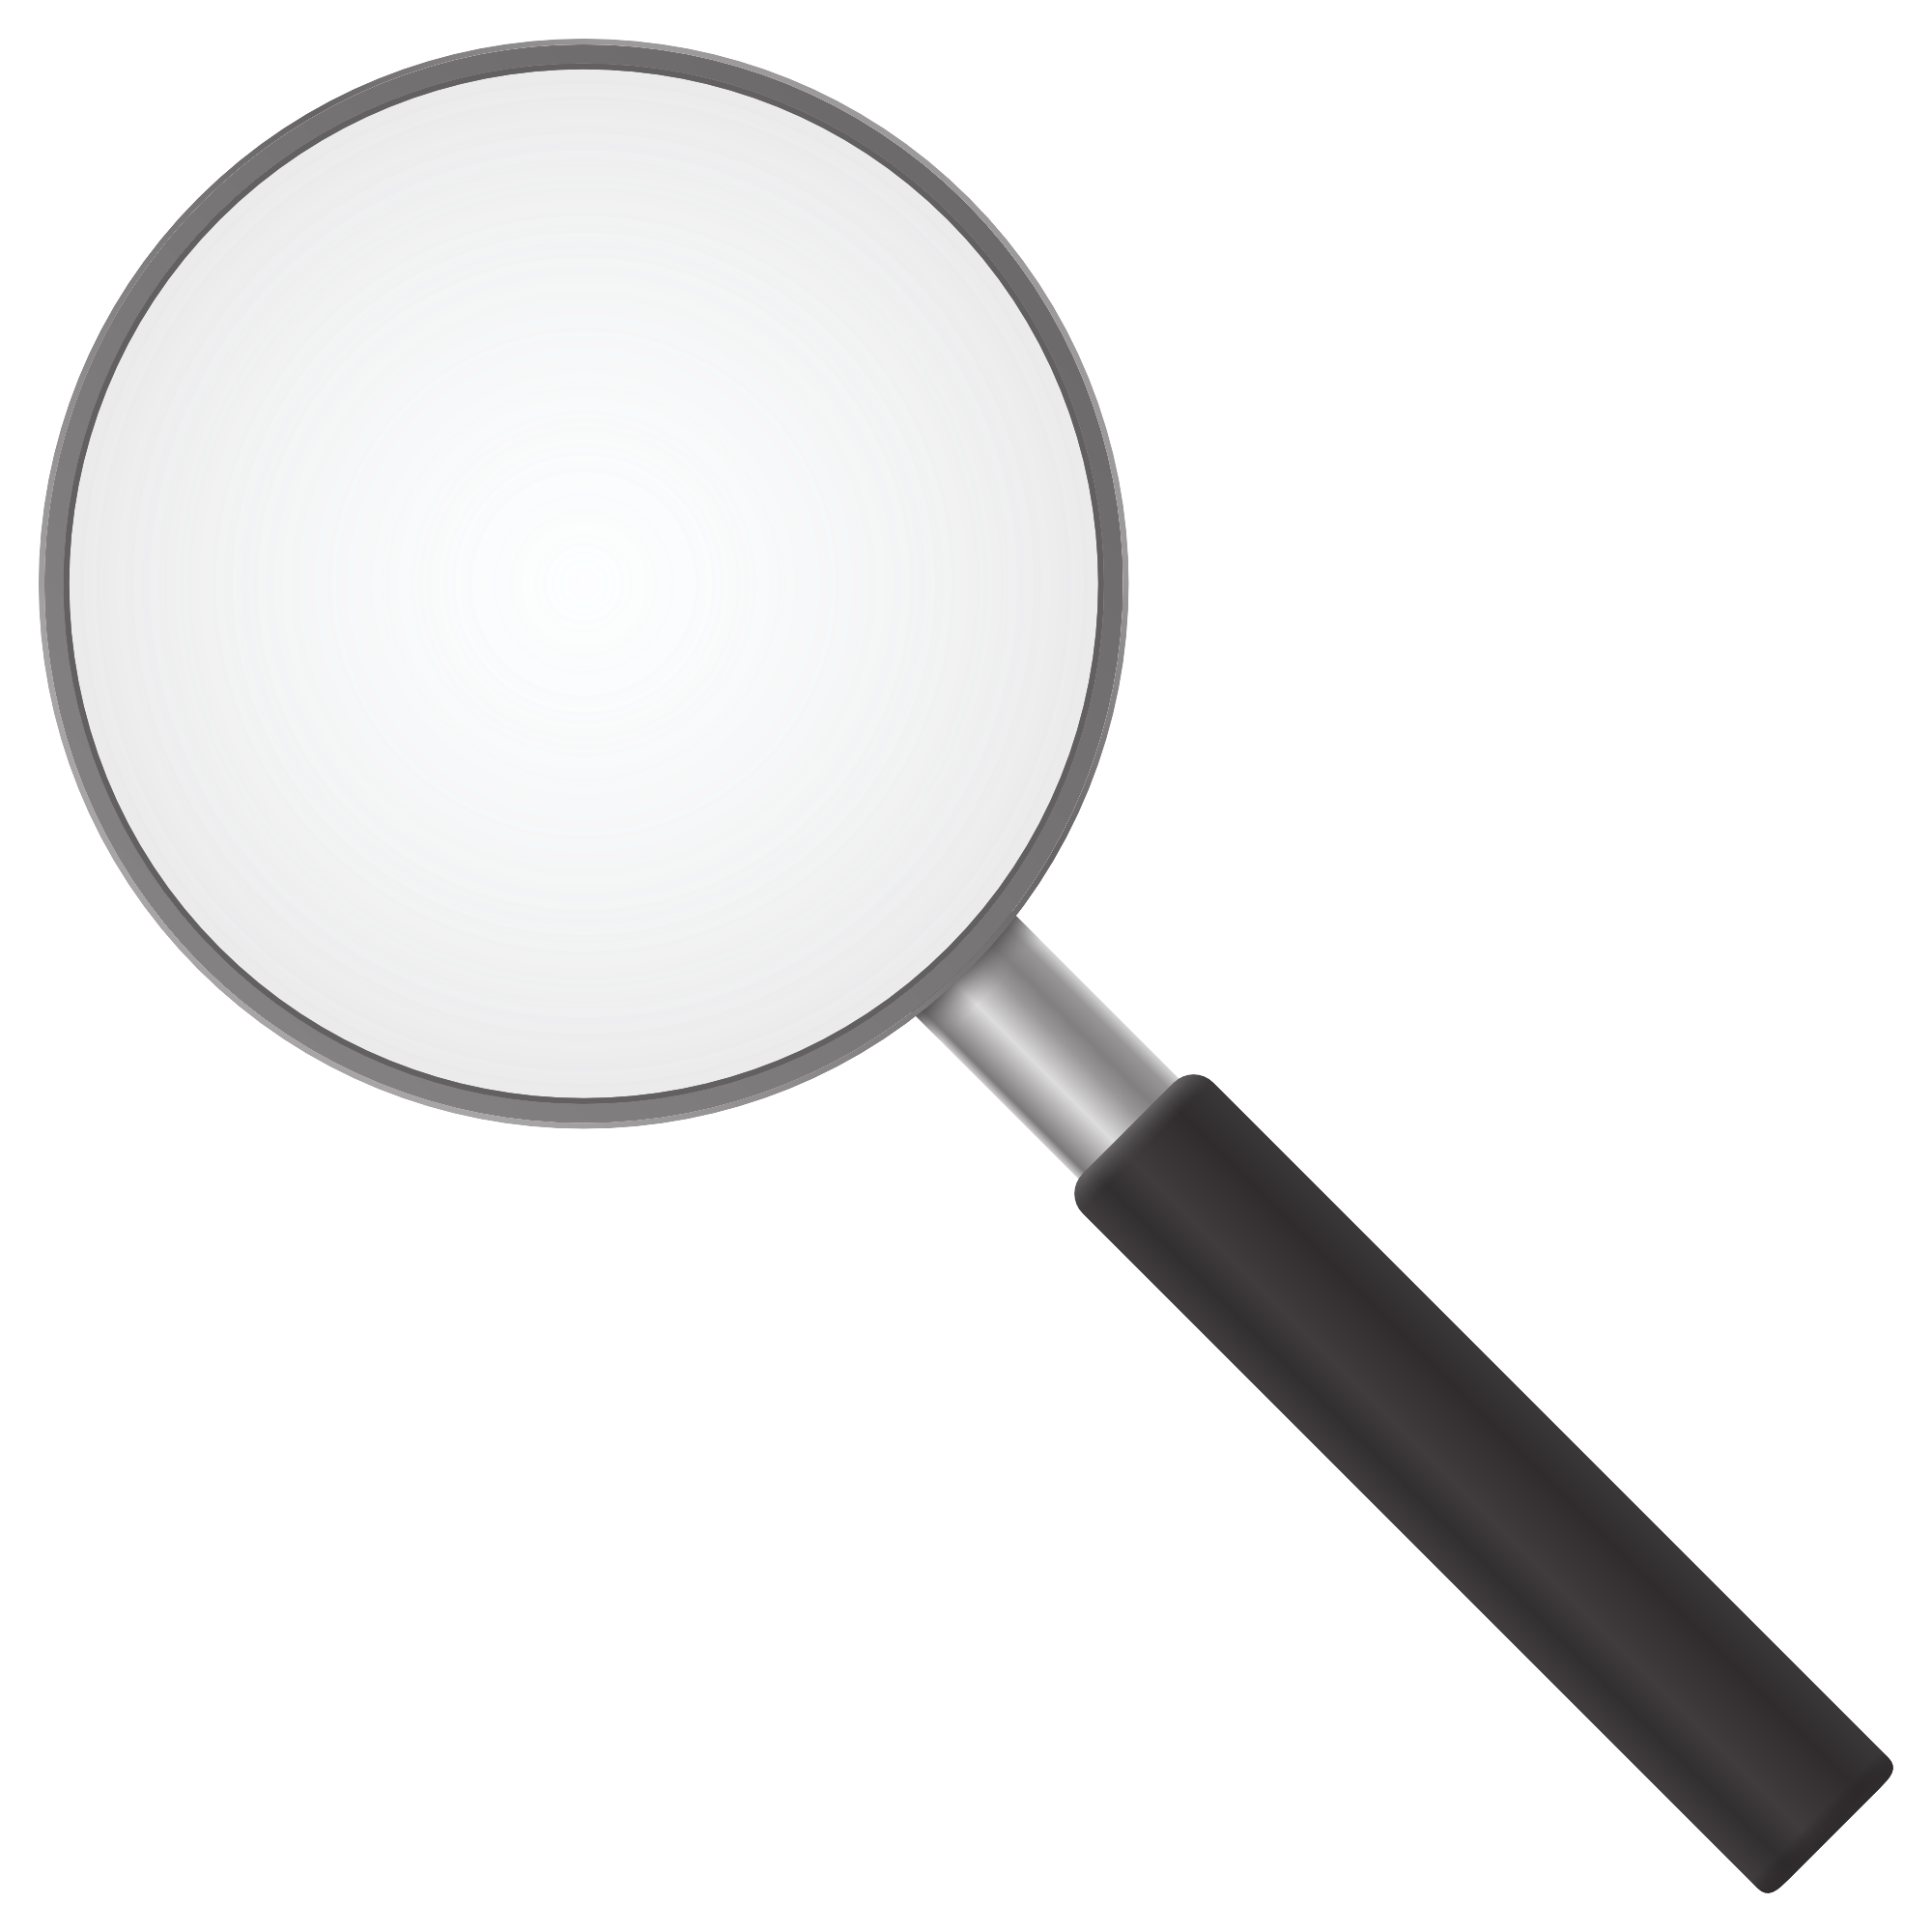 Loupe Vector Png Transparent Image - Loupe, Transparent background PNG HD thumbnail